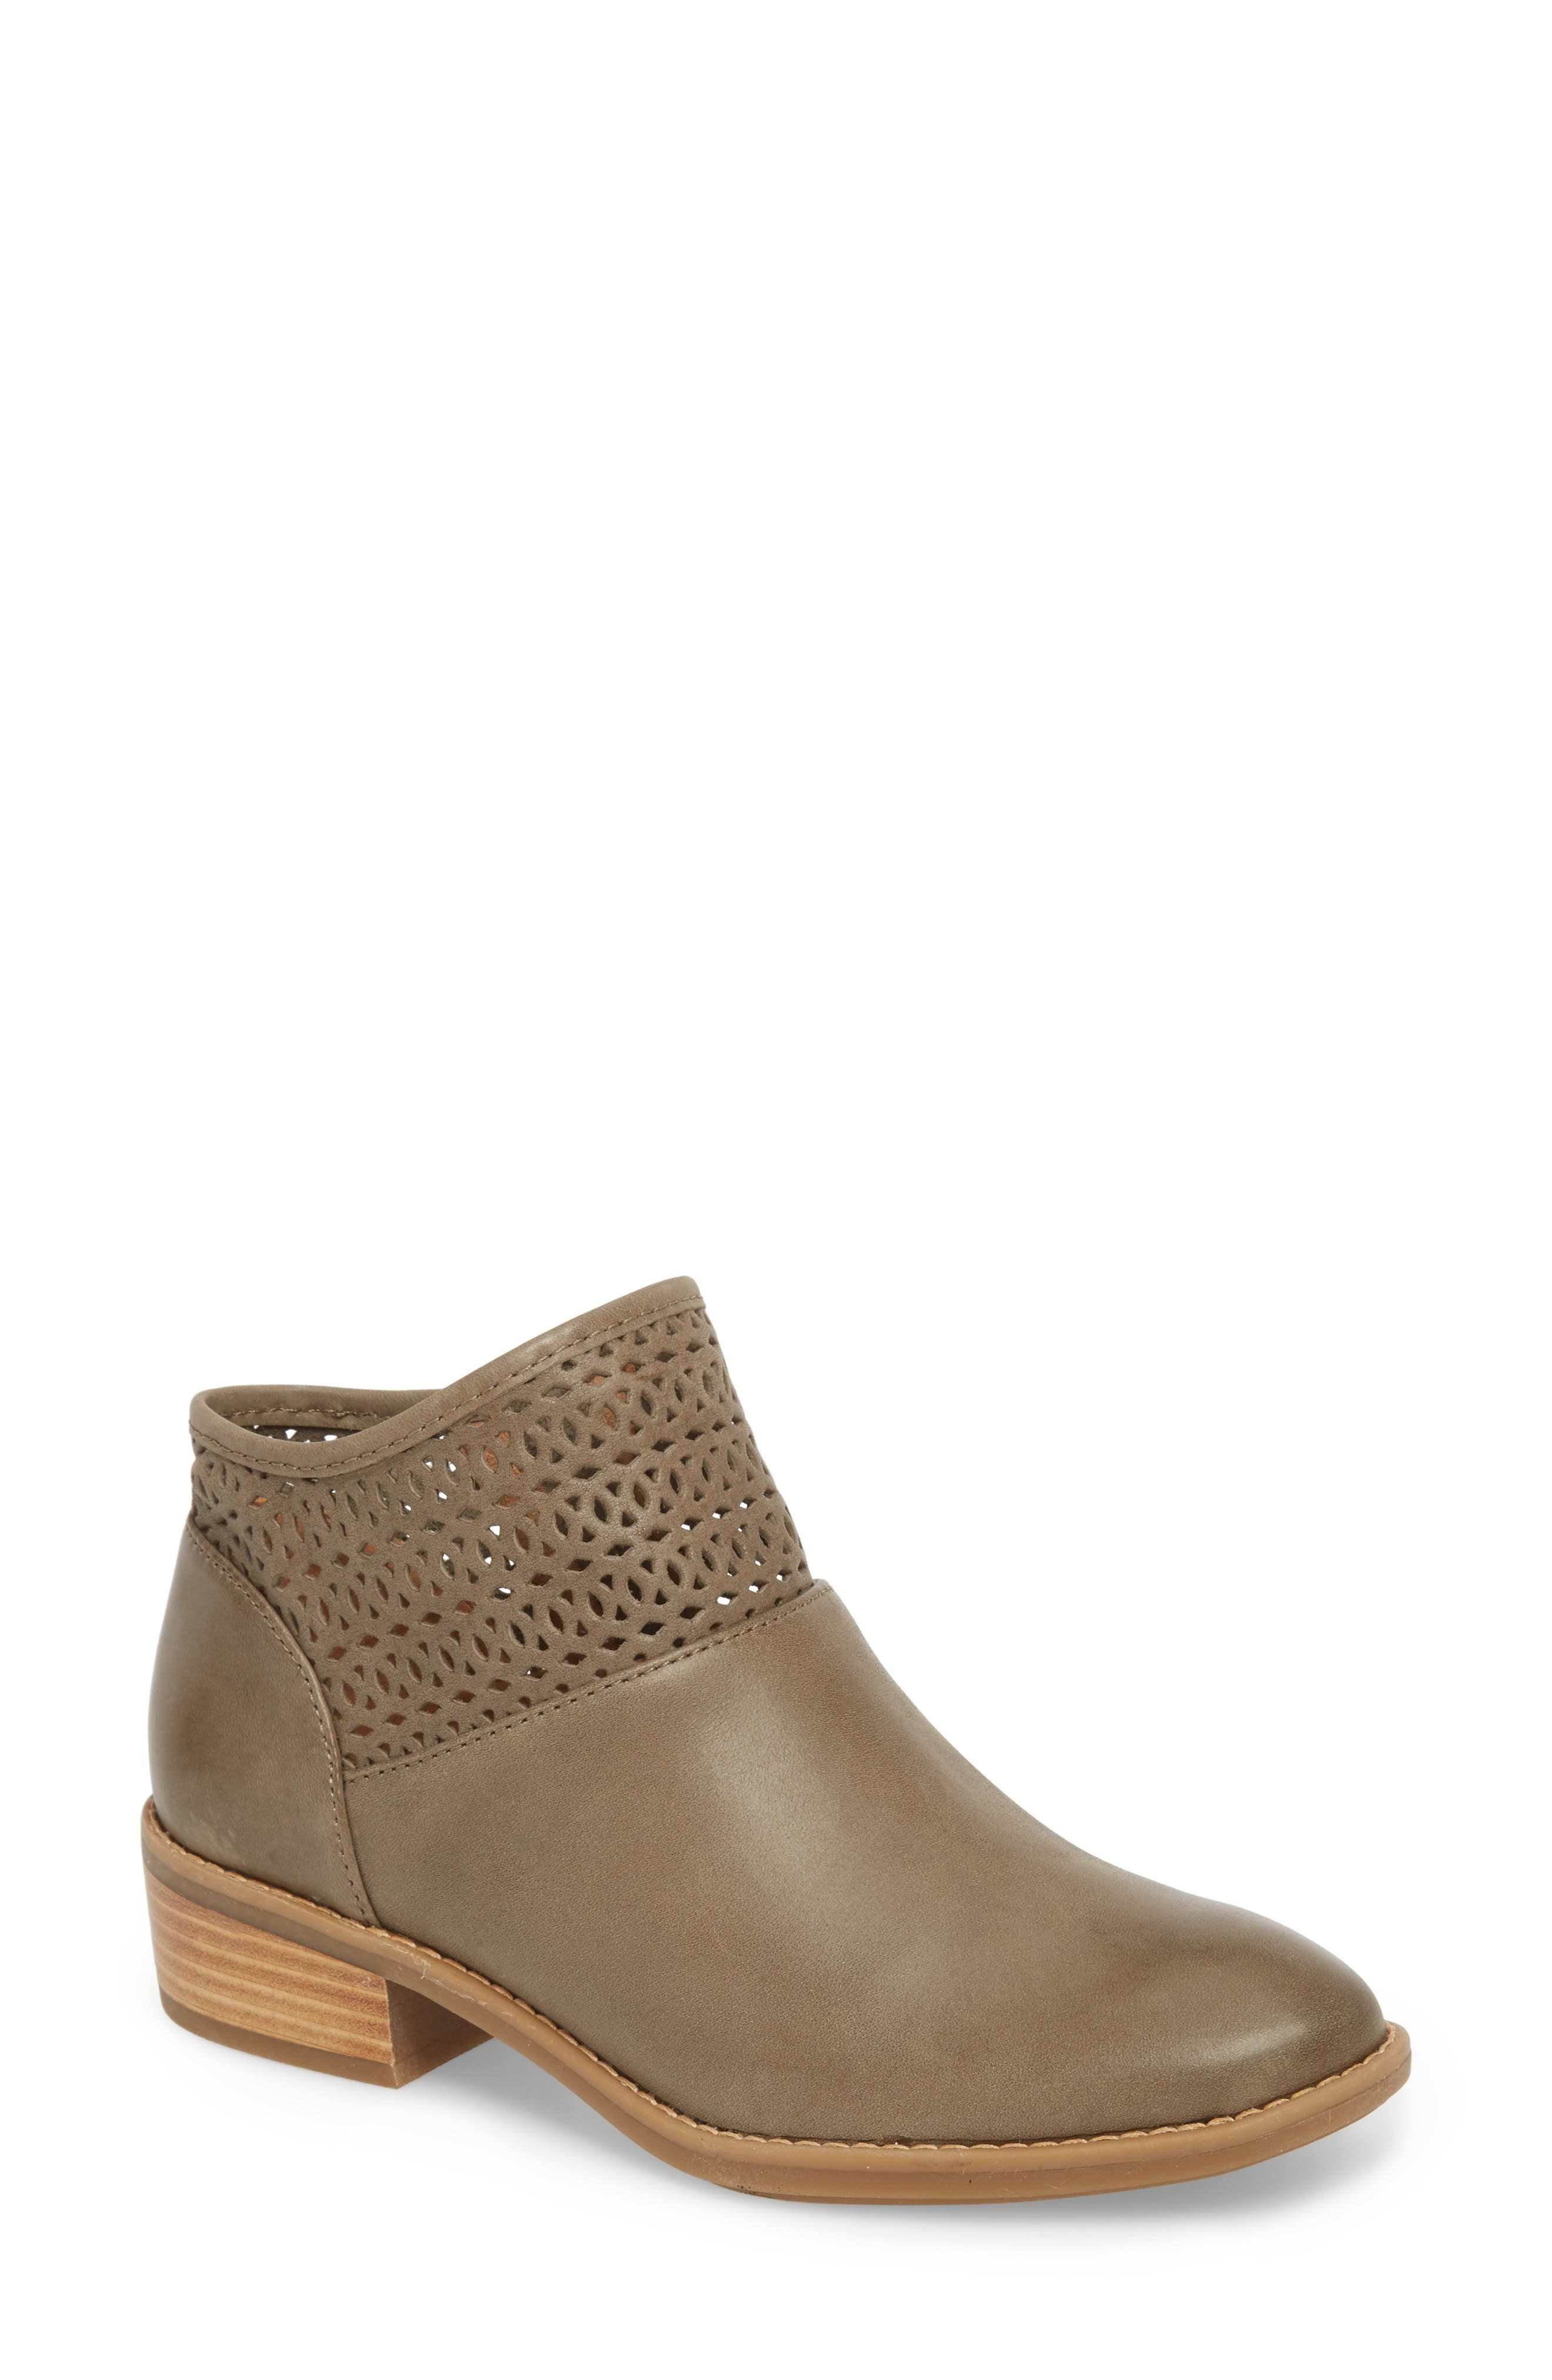 Caileen Bootie,                         Main,                         color, Pale Olive